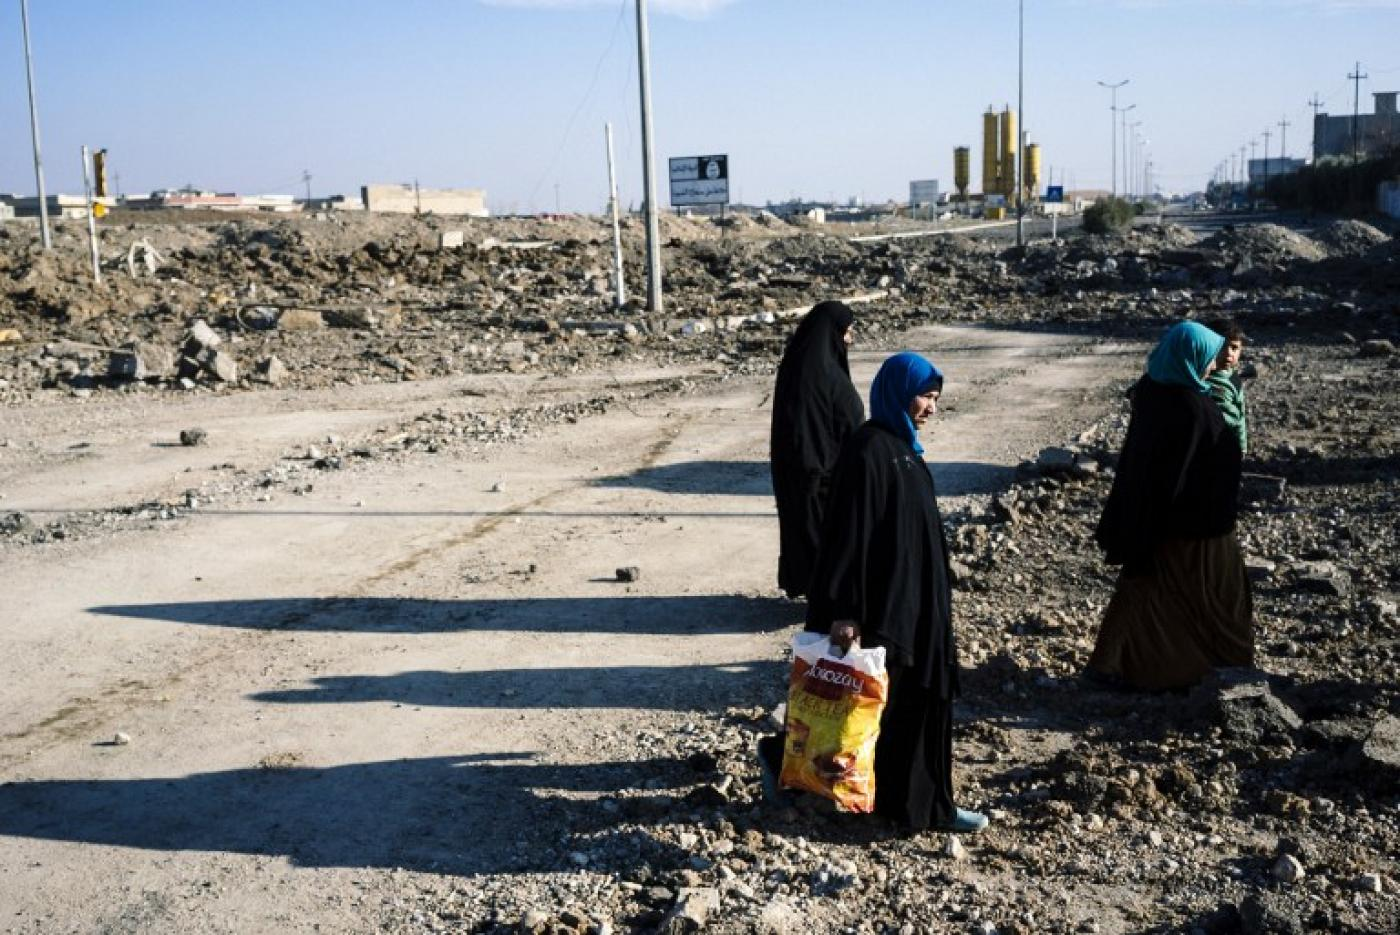 IS rapes and tortures Sunni women too: Report | Middle East Eye